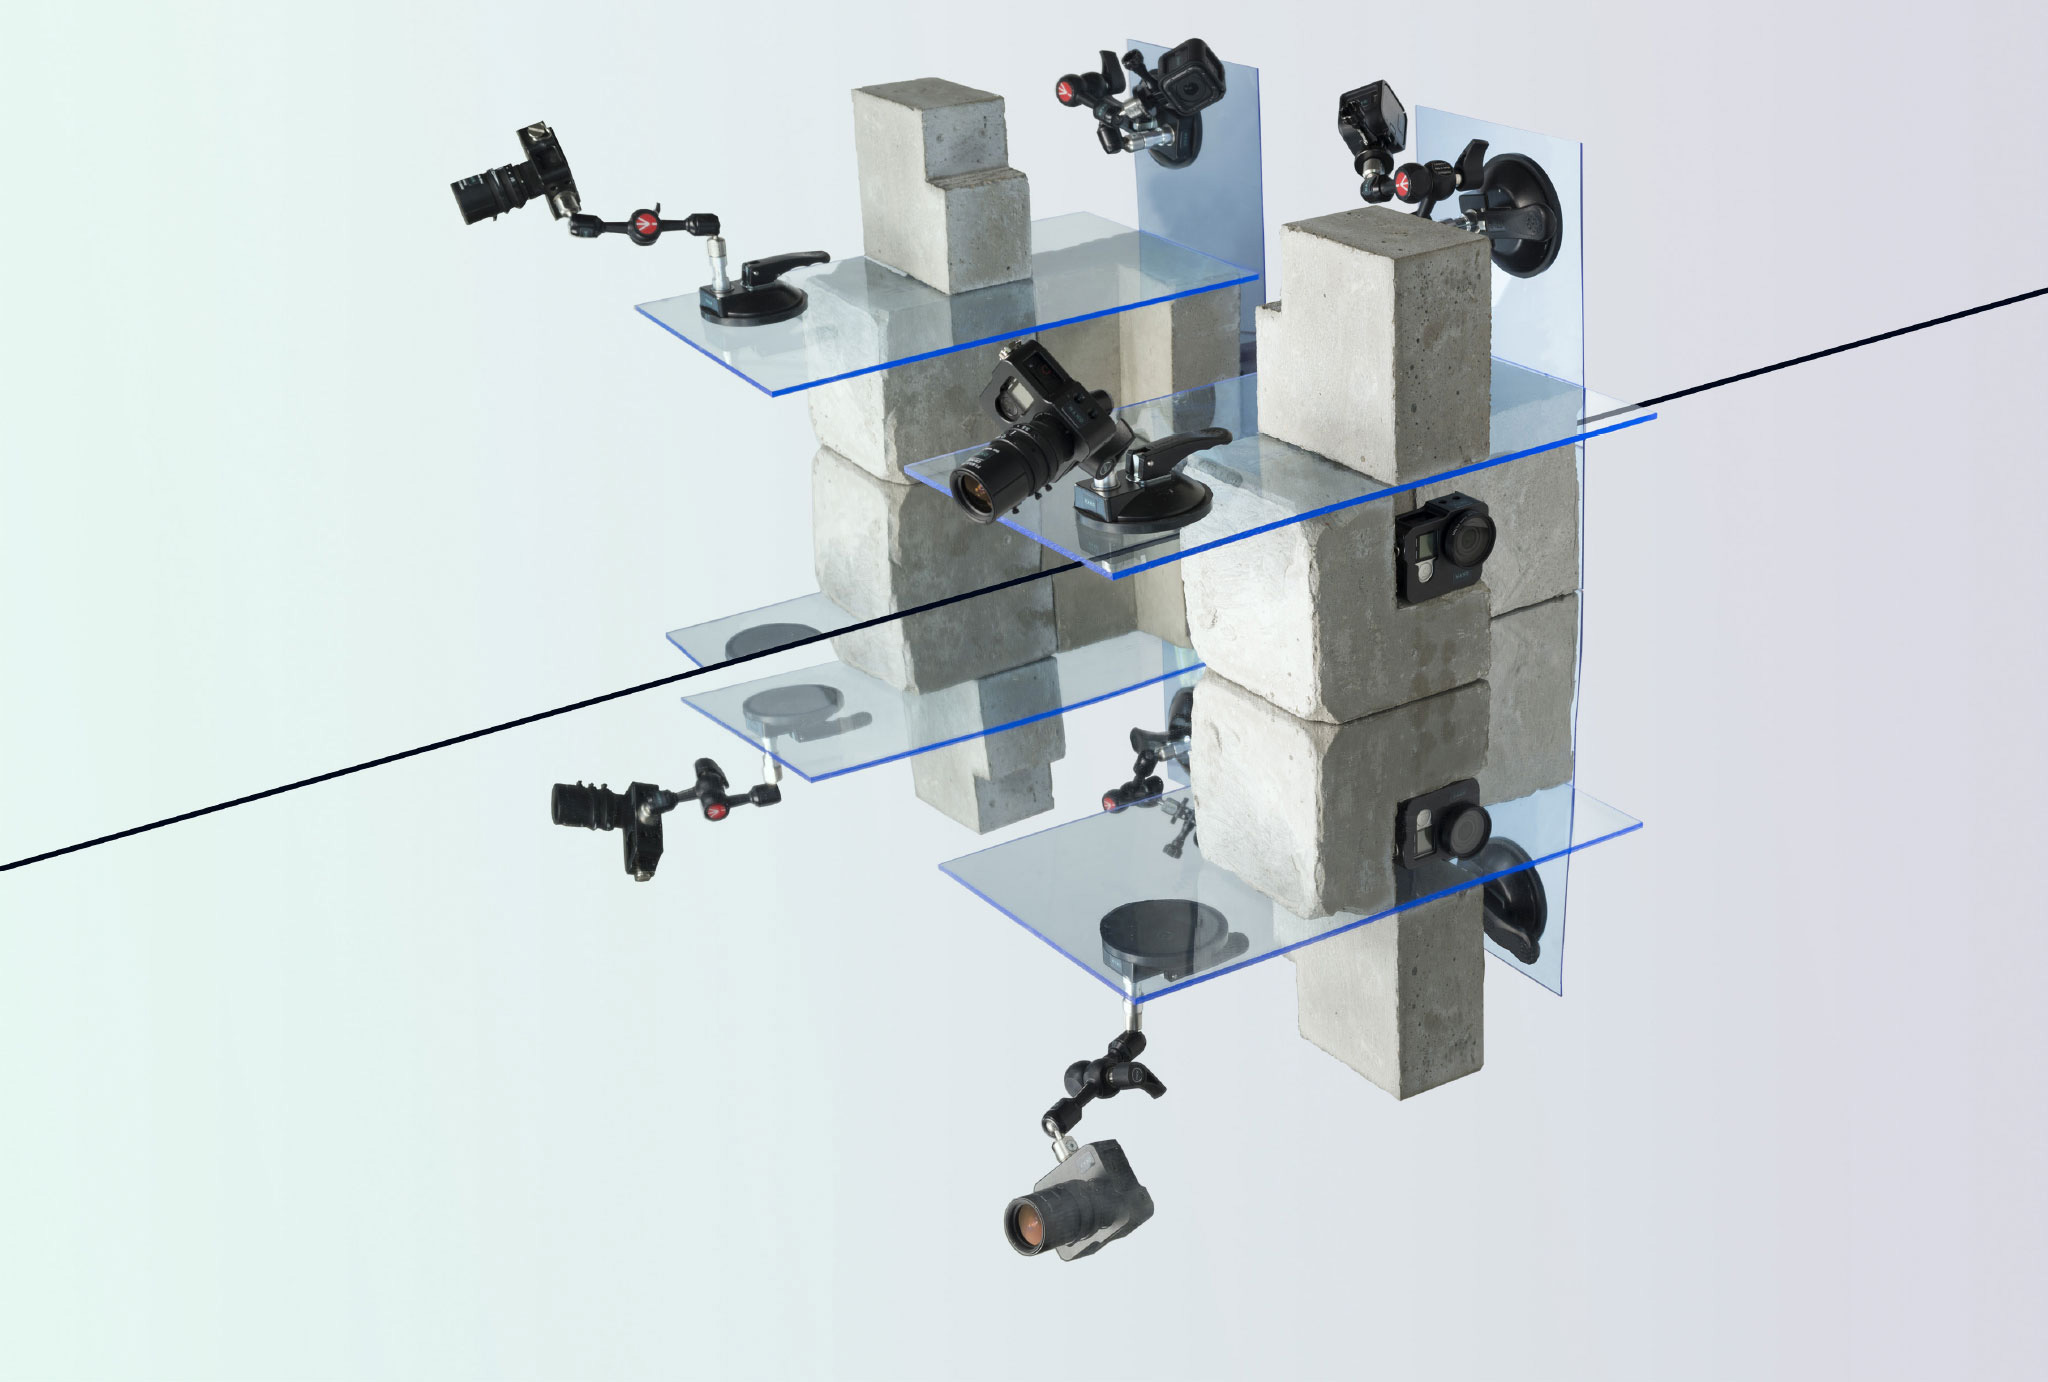 art-direction for NANO featuring mini cameras fixed to plastic sheets using suction mounts